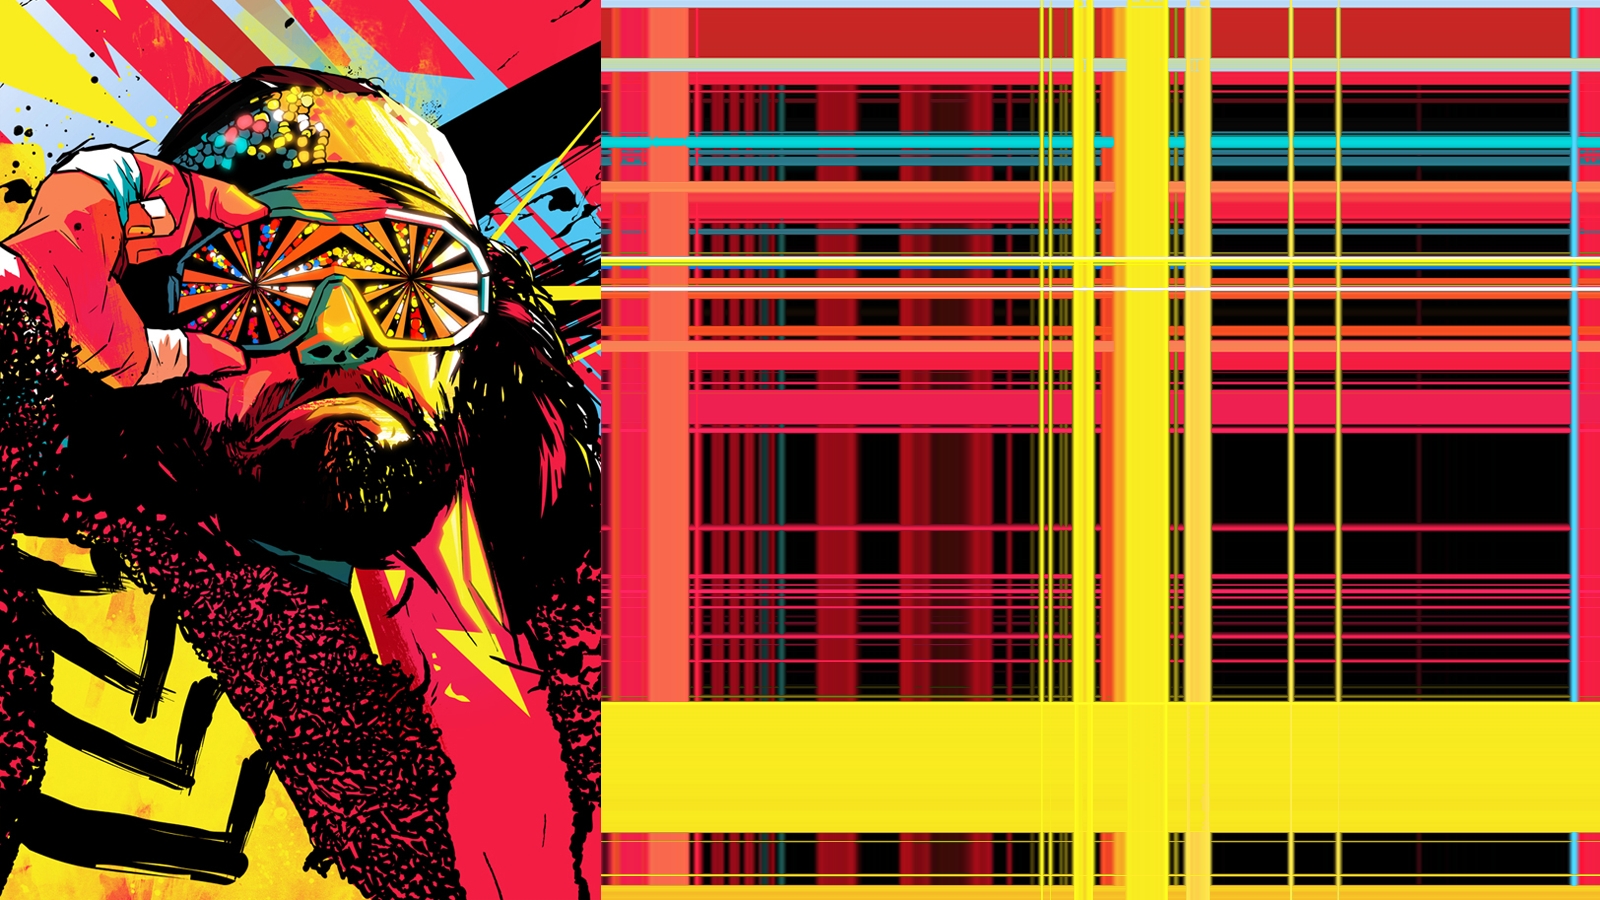 Randy Macho Man Savage Wallpaper And Background Image